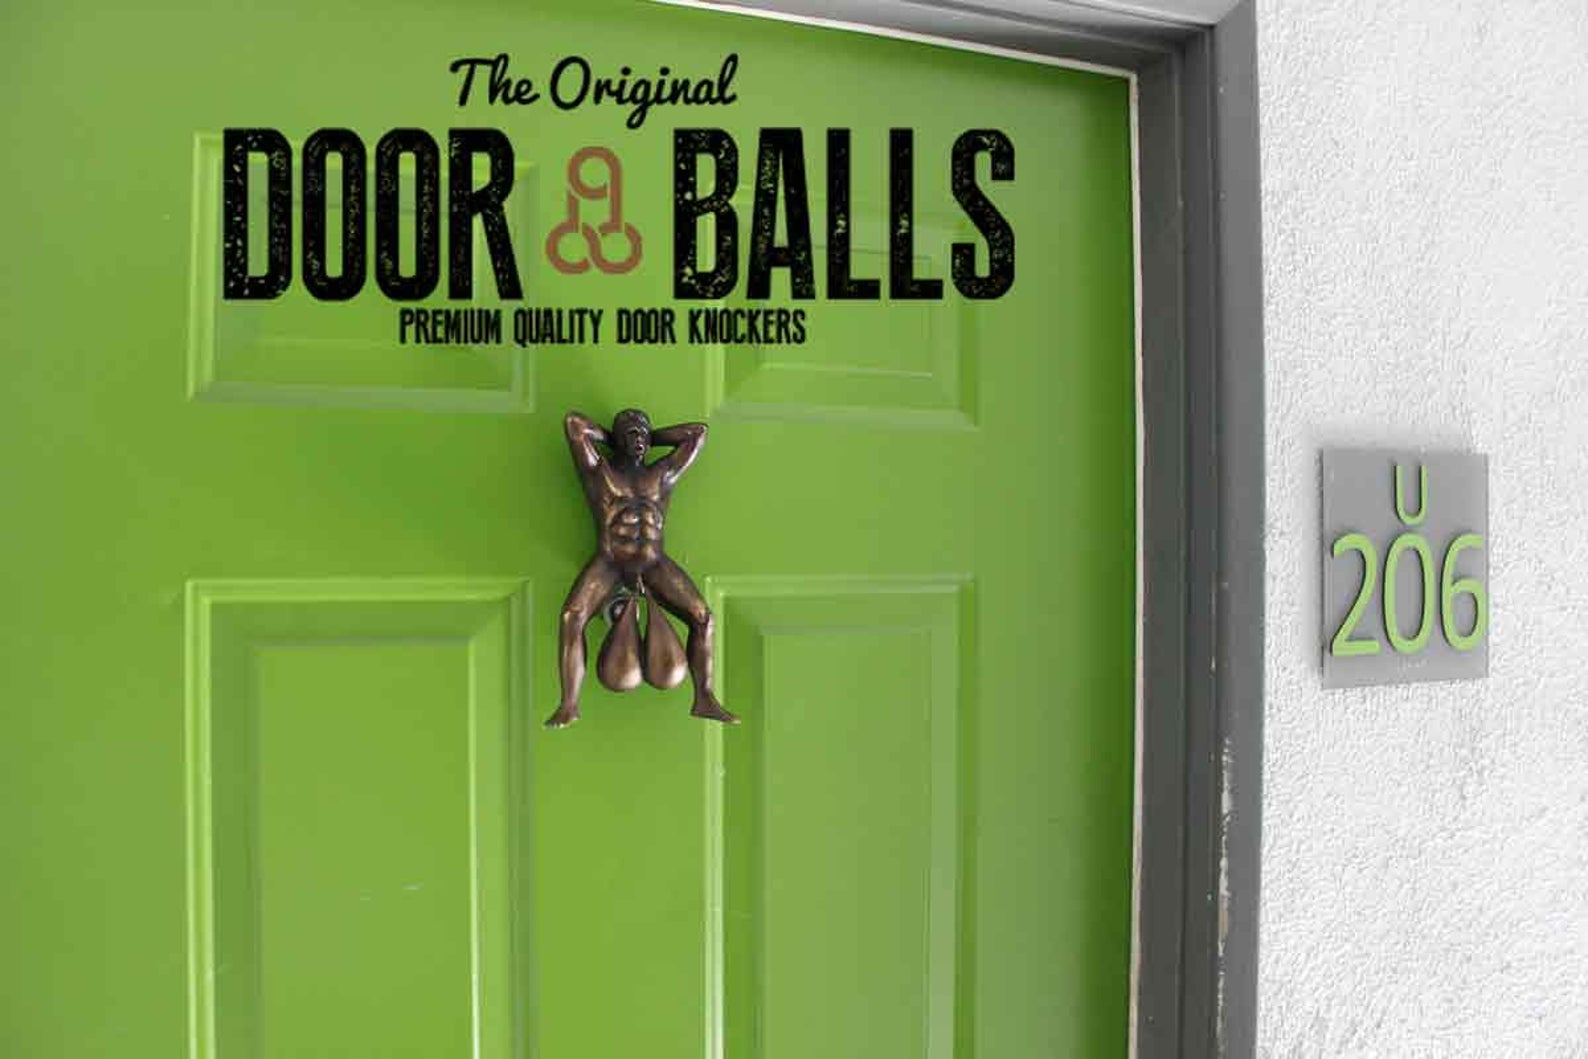 Doorball Knocker Gag Gift by Gifter World